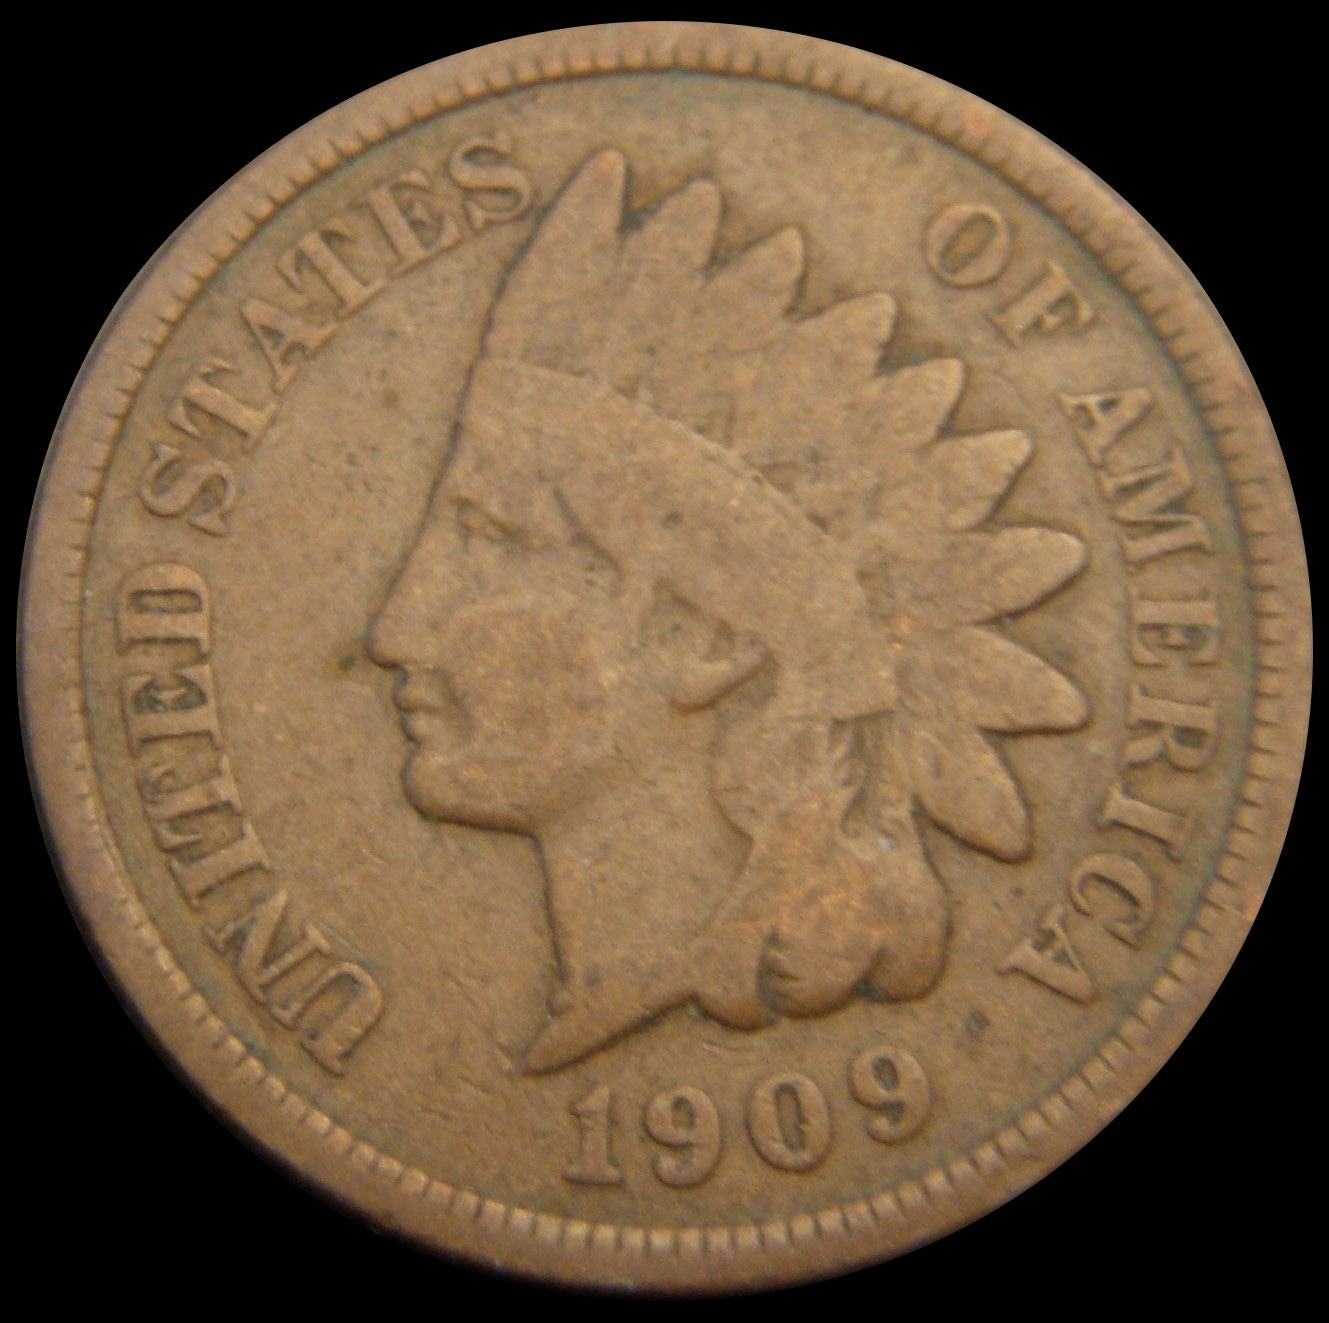 100 FINDS IN 100 DAYS: #44 Indian Head Cent du Jour.